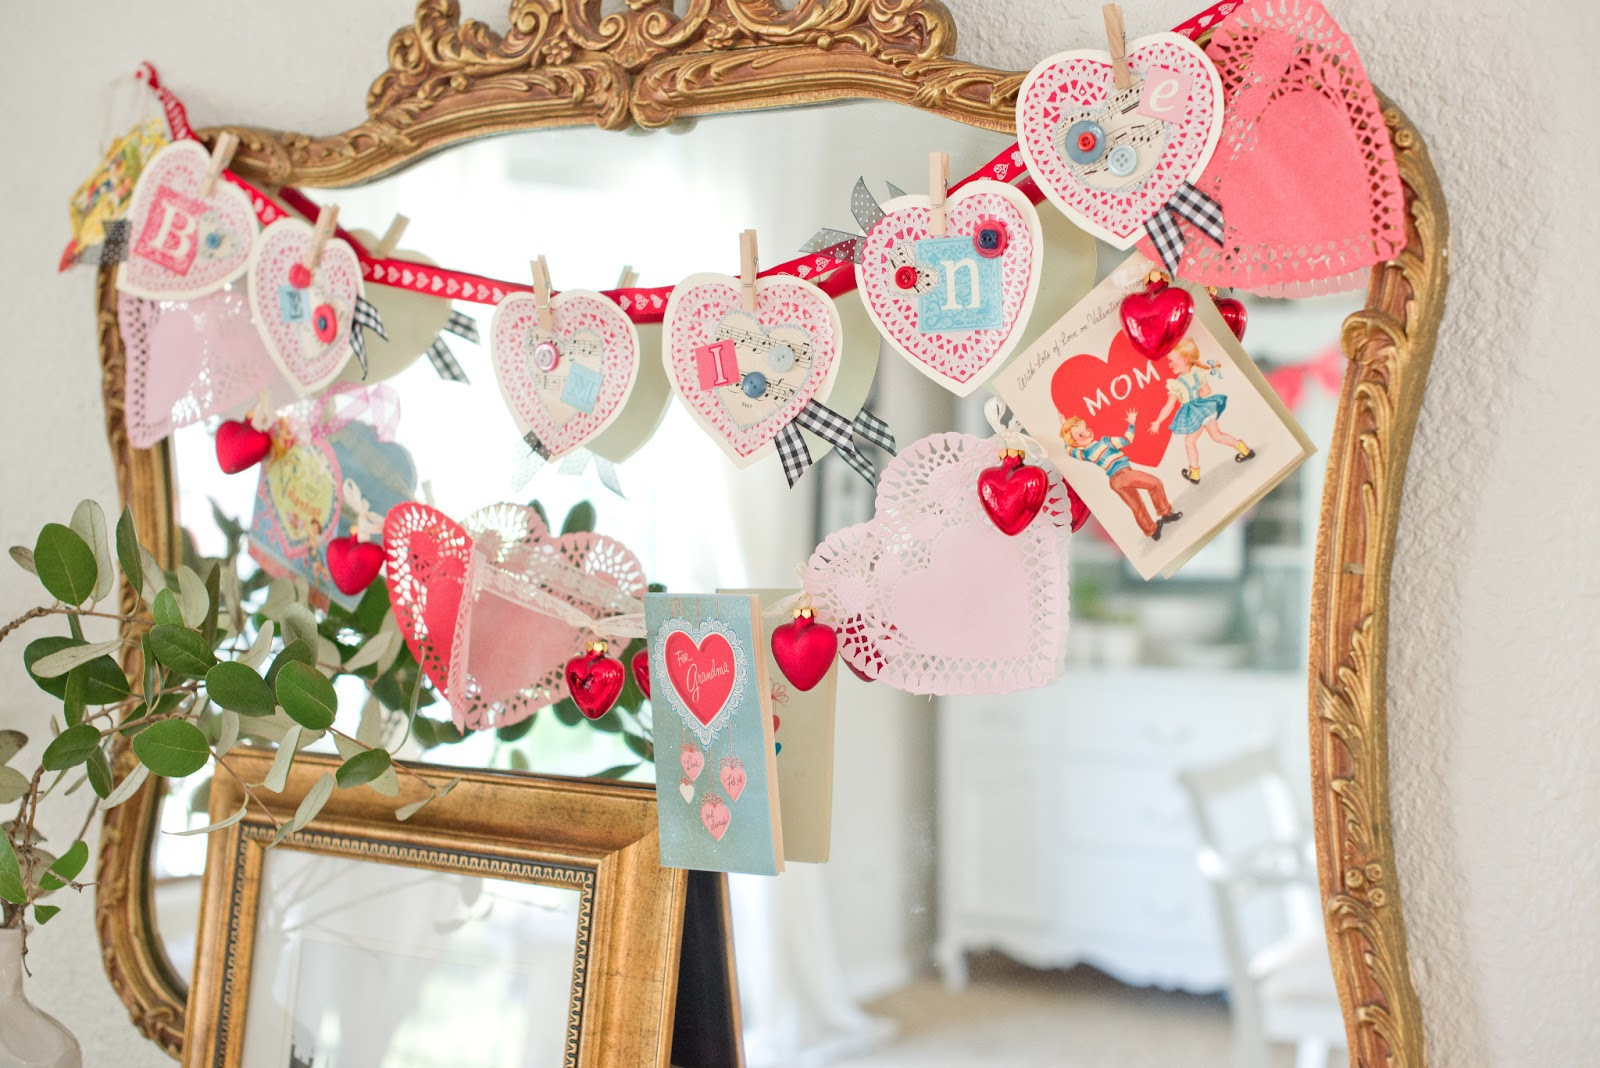 vintage-valentines-decorations-idea